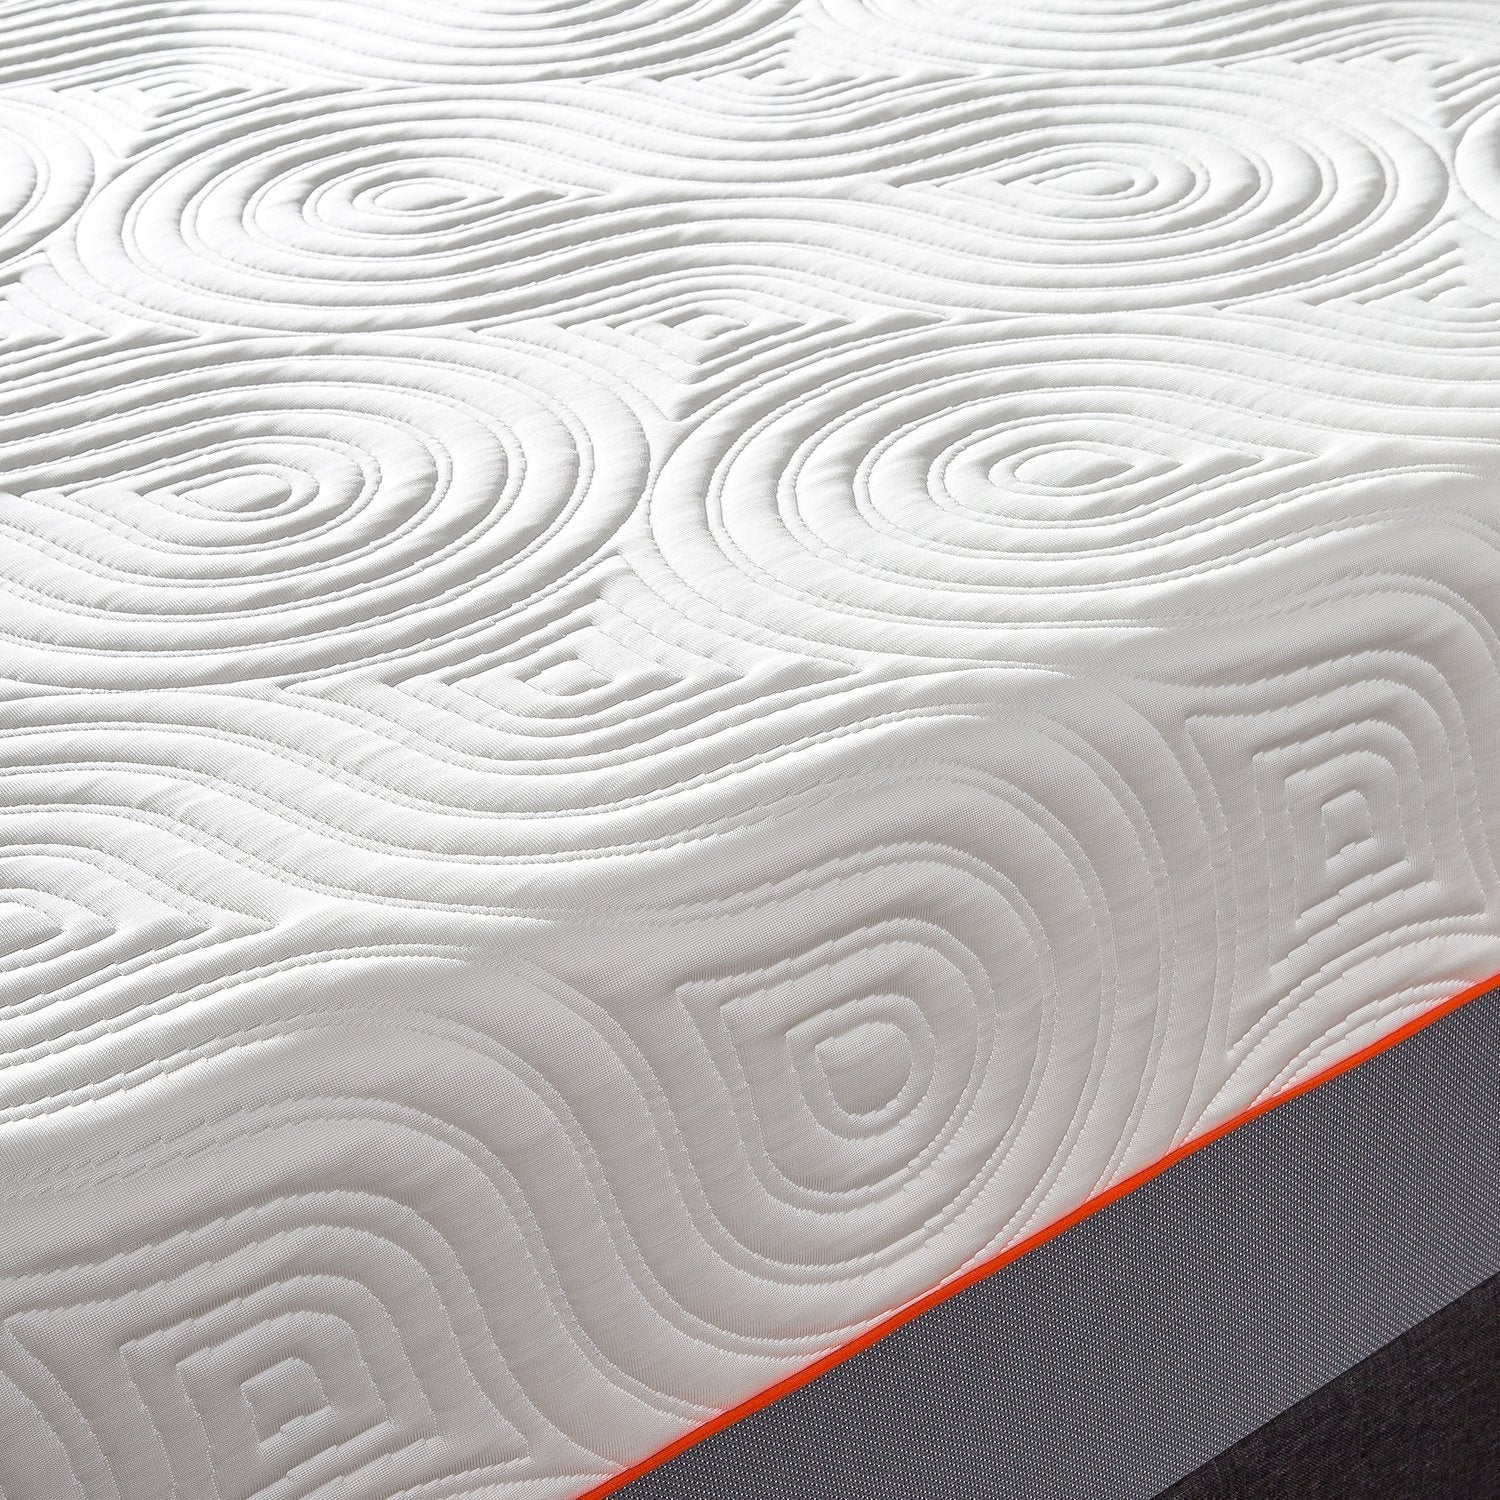 Cooling Memory Foam and iCoil Spring Hybrid Mattress